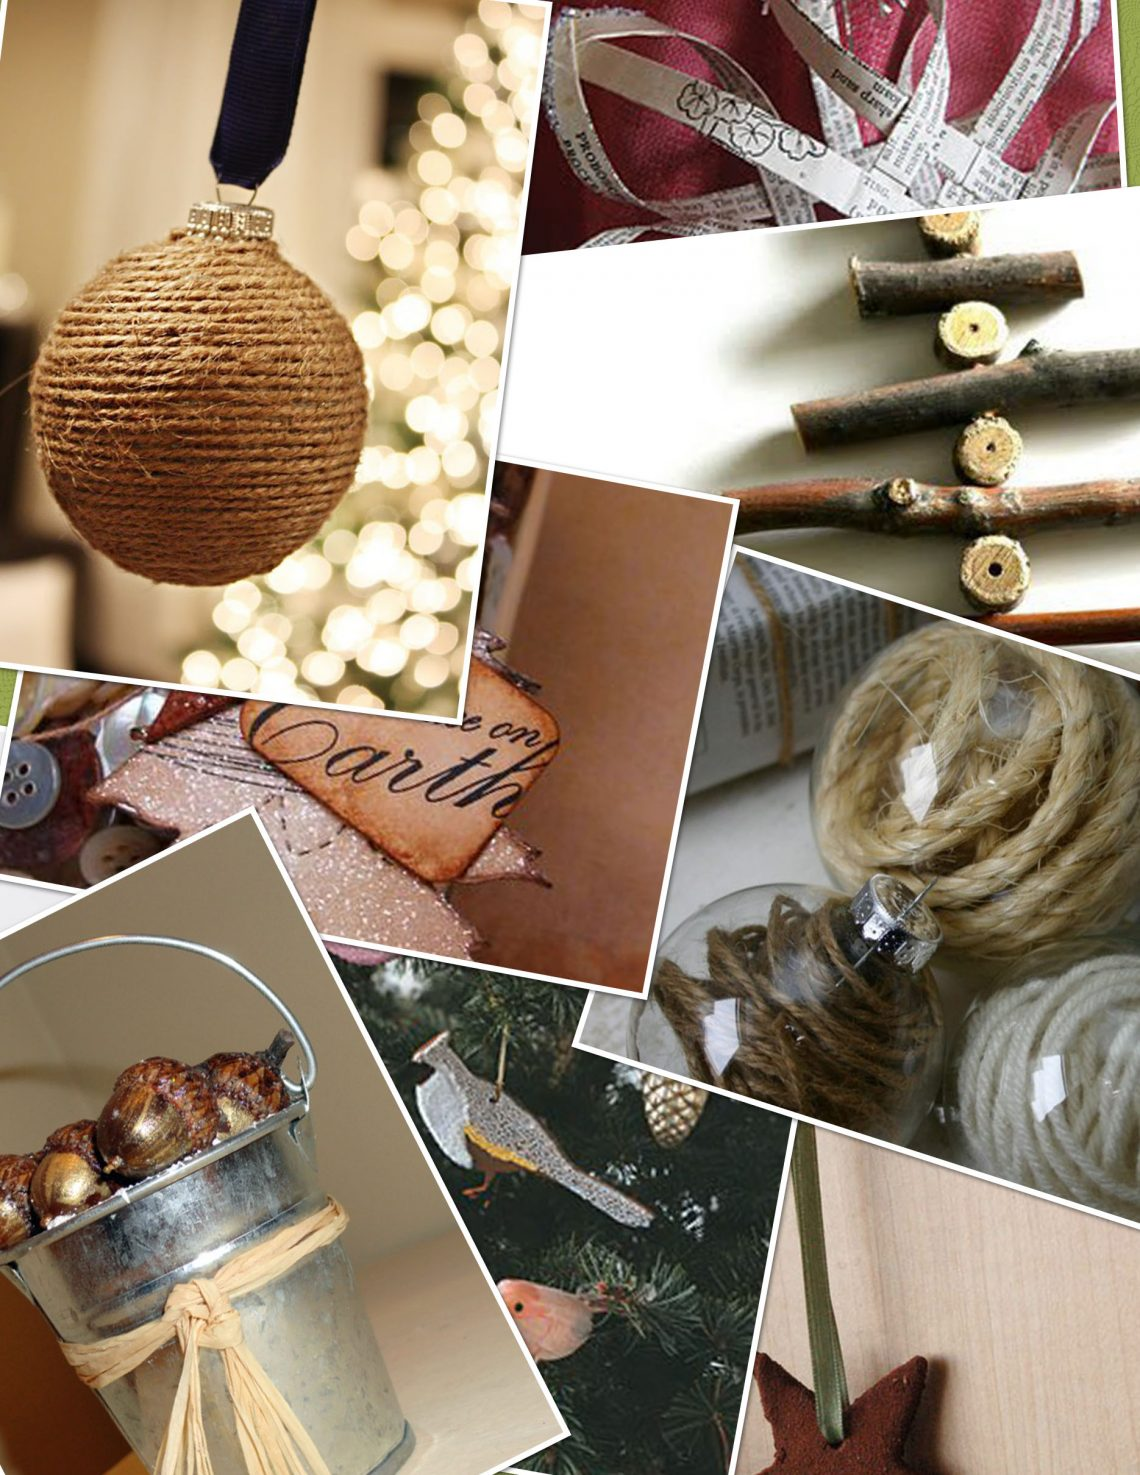 Homemade rustic christmas ornaments - Check Out This Large Collection Of Homemade Christmas Ornaments In A Rustic